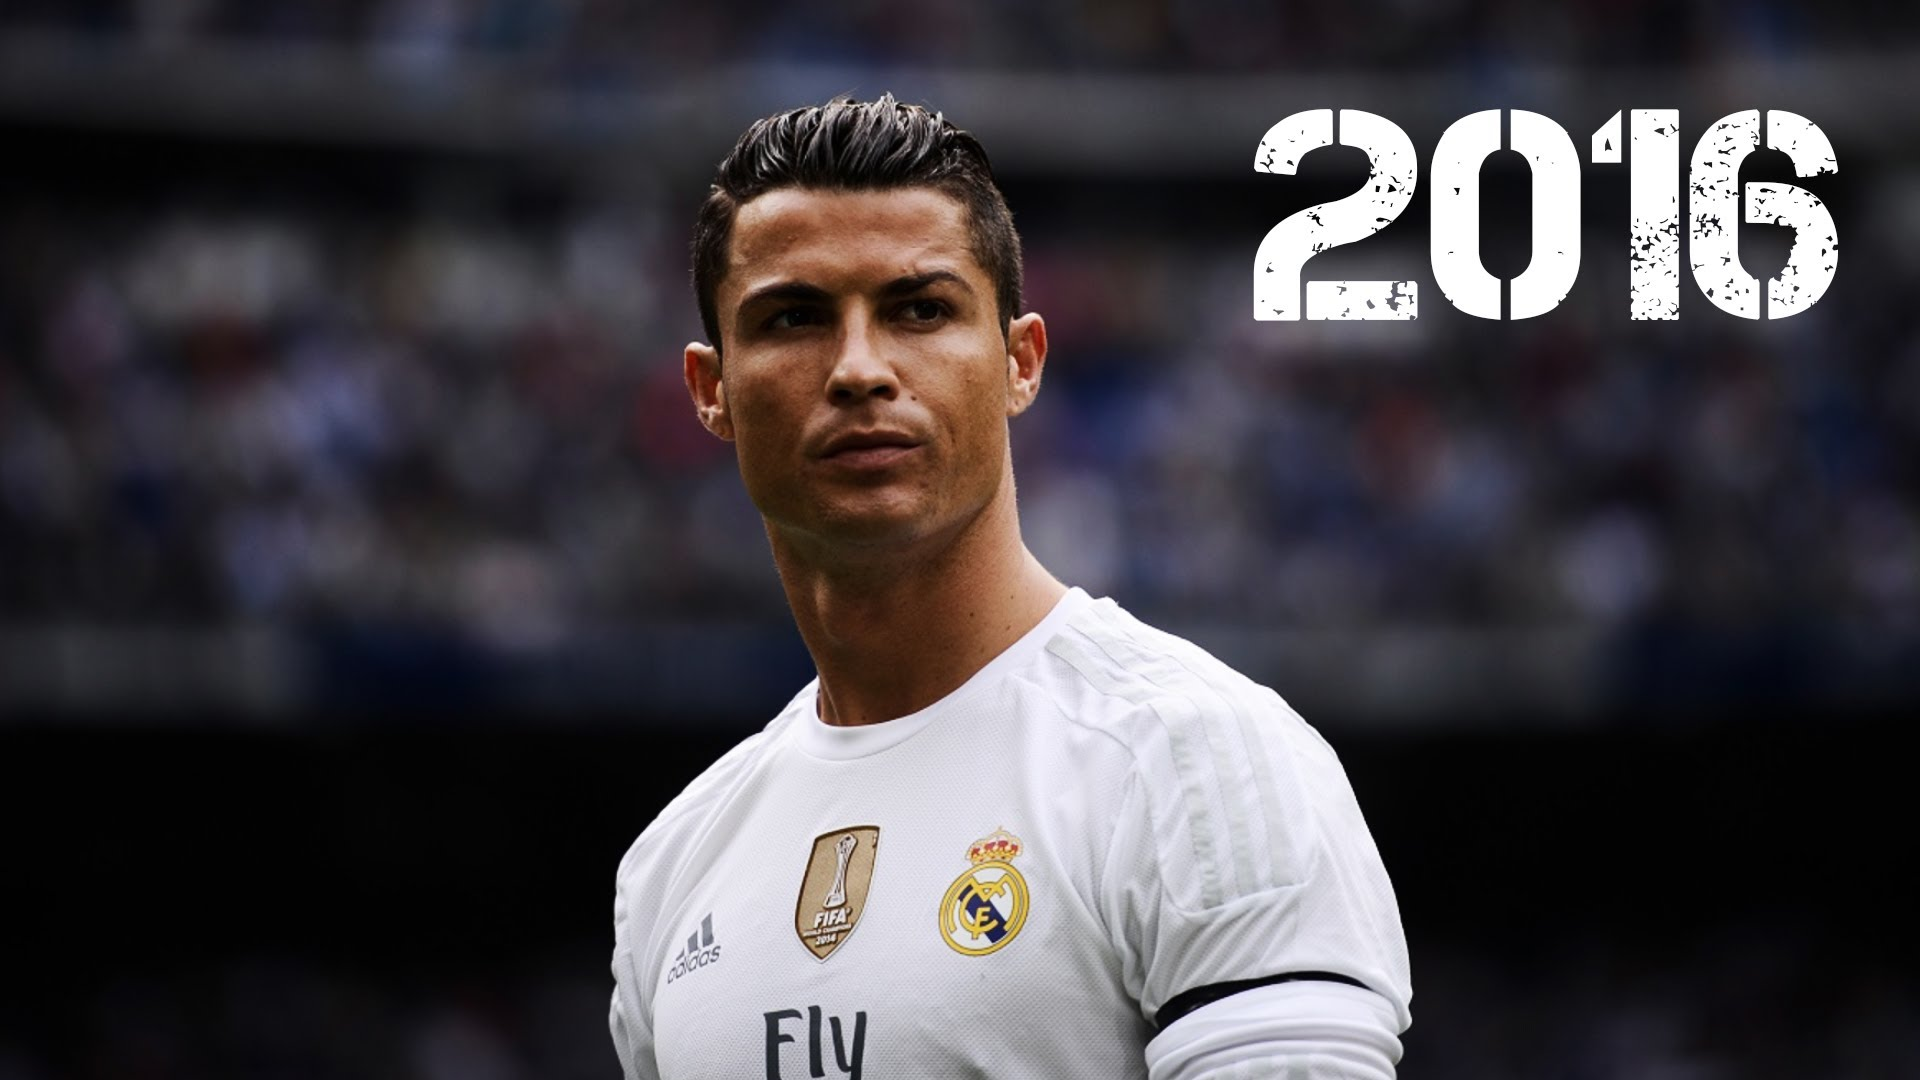 Cristiano Ronaldo 2016 Hd Free Football Mobile Desktop Download Wallpapers Pics